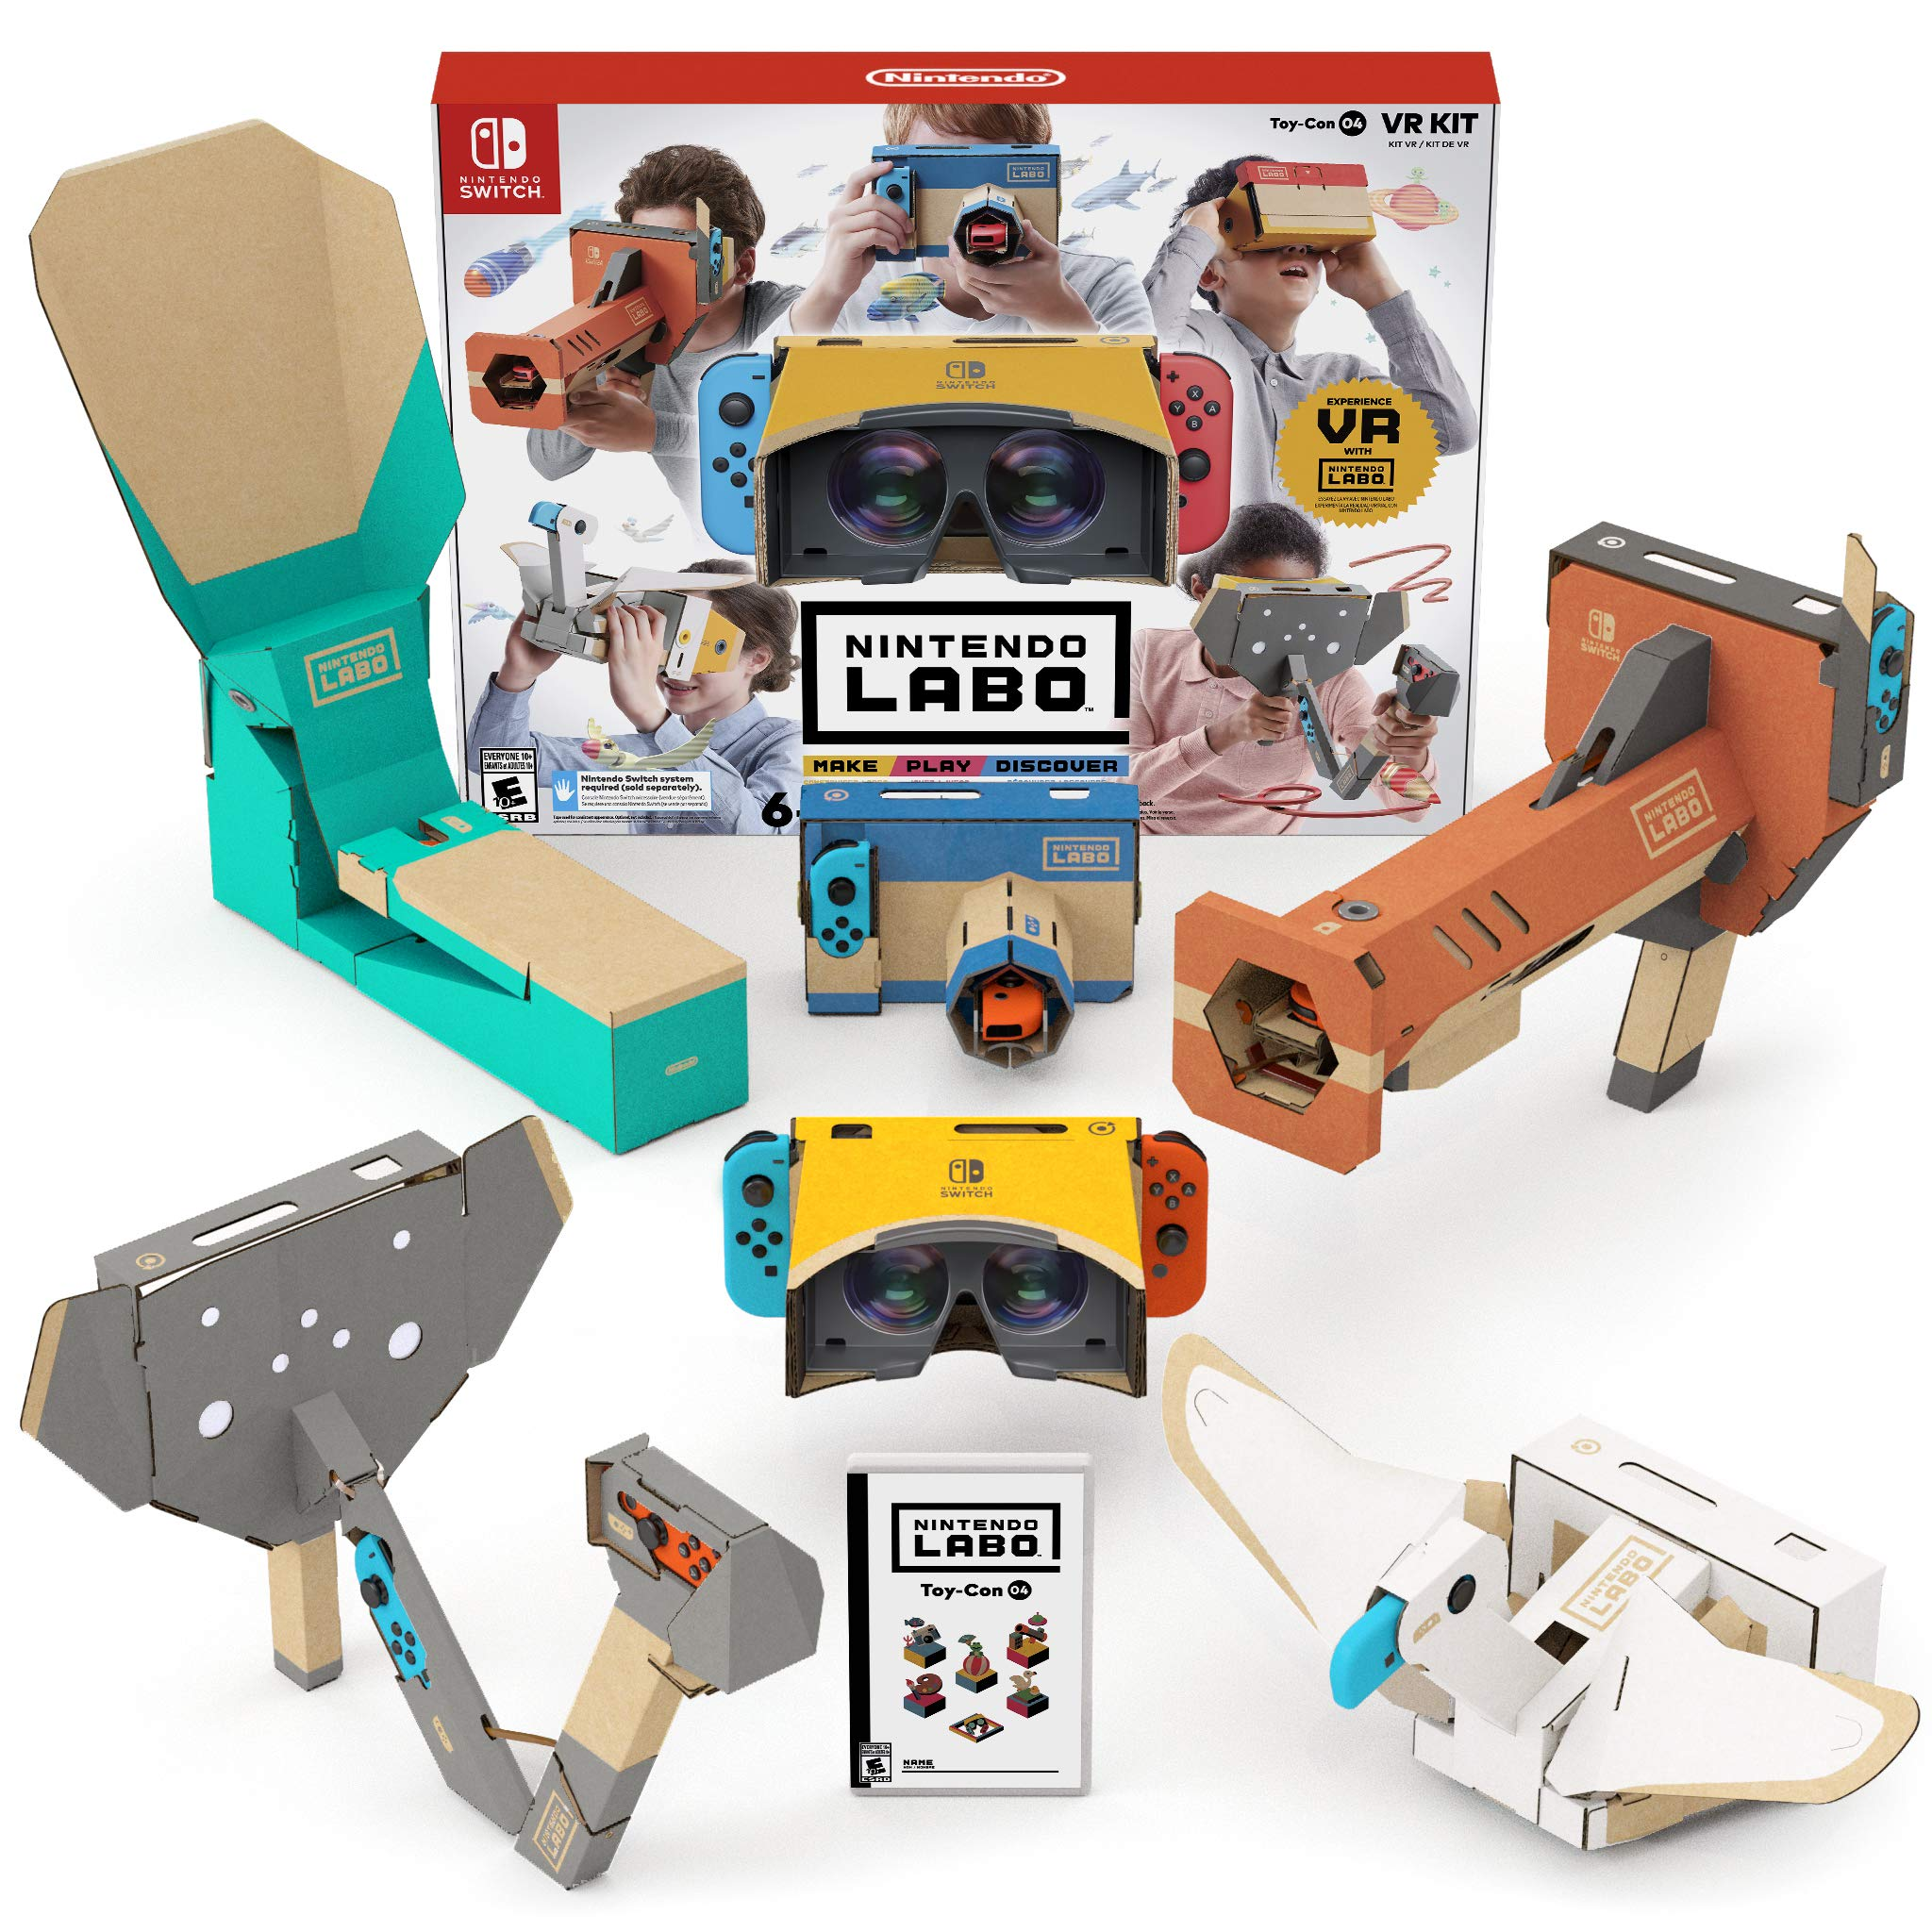 Nintendo Labo Toy-Con 04: VR Kit - Switch by Nintendo (Image #2)